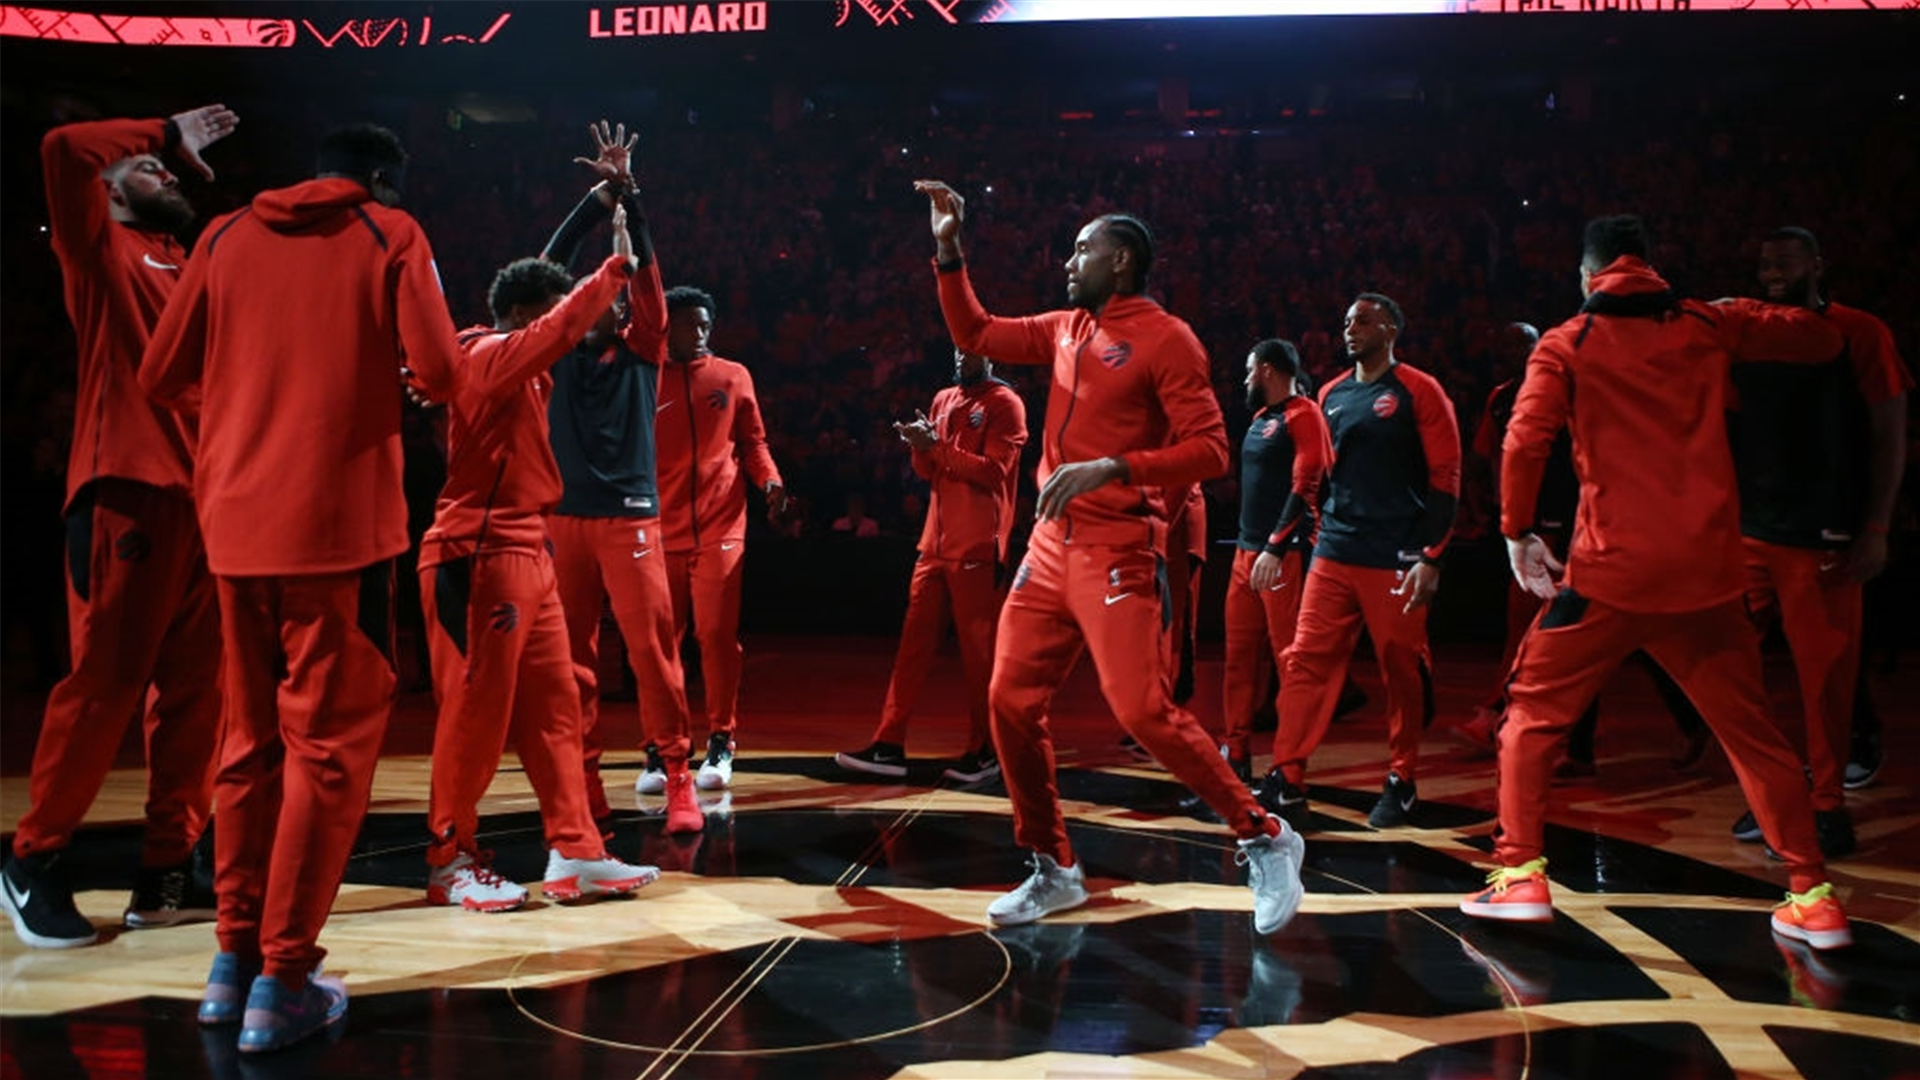 Nba Toronto Raptors Set Record Broadcast Viewership